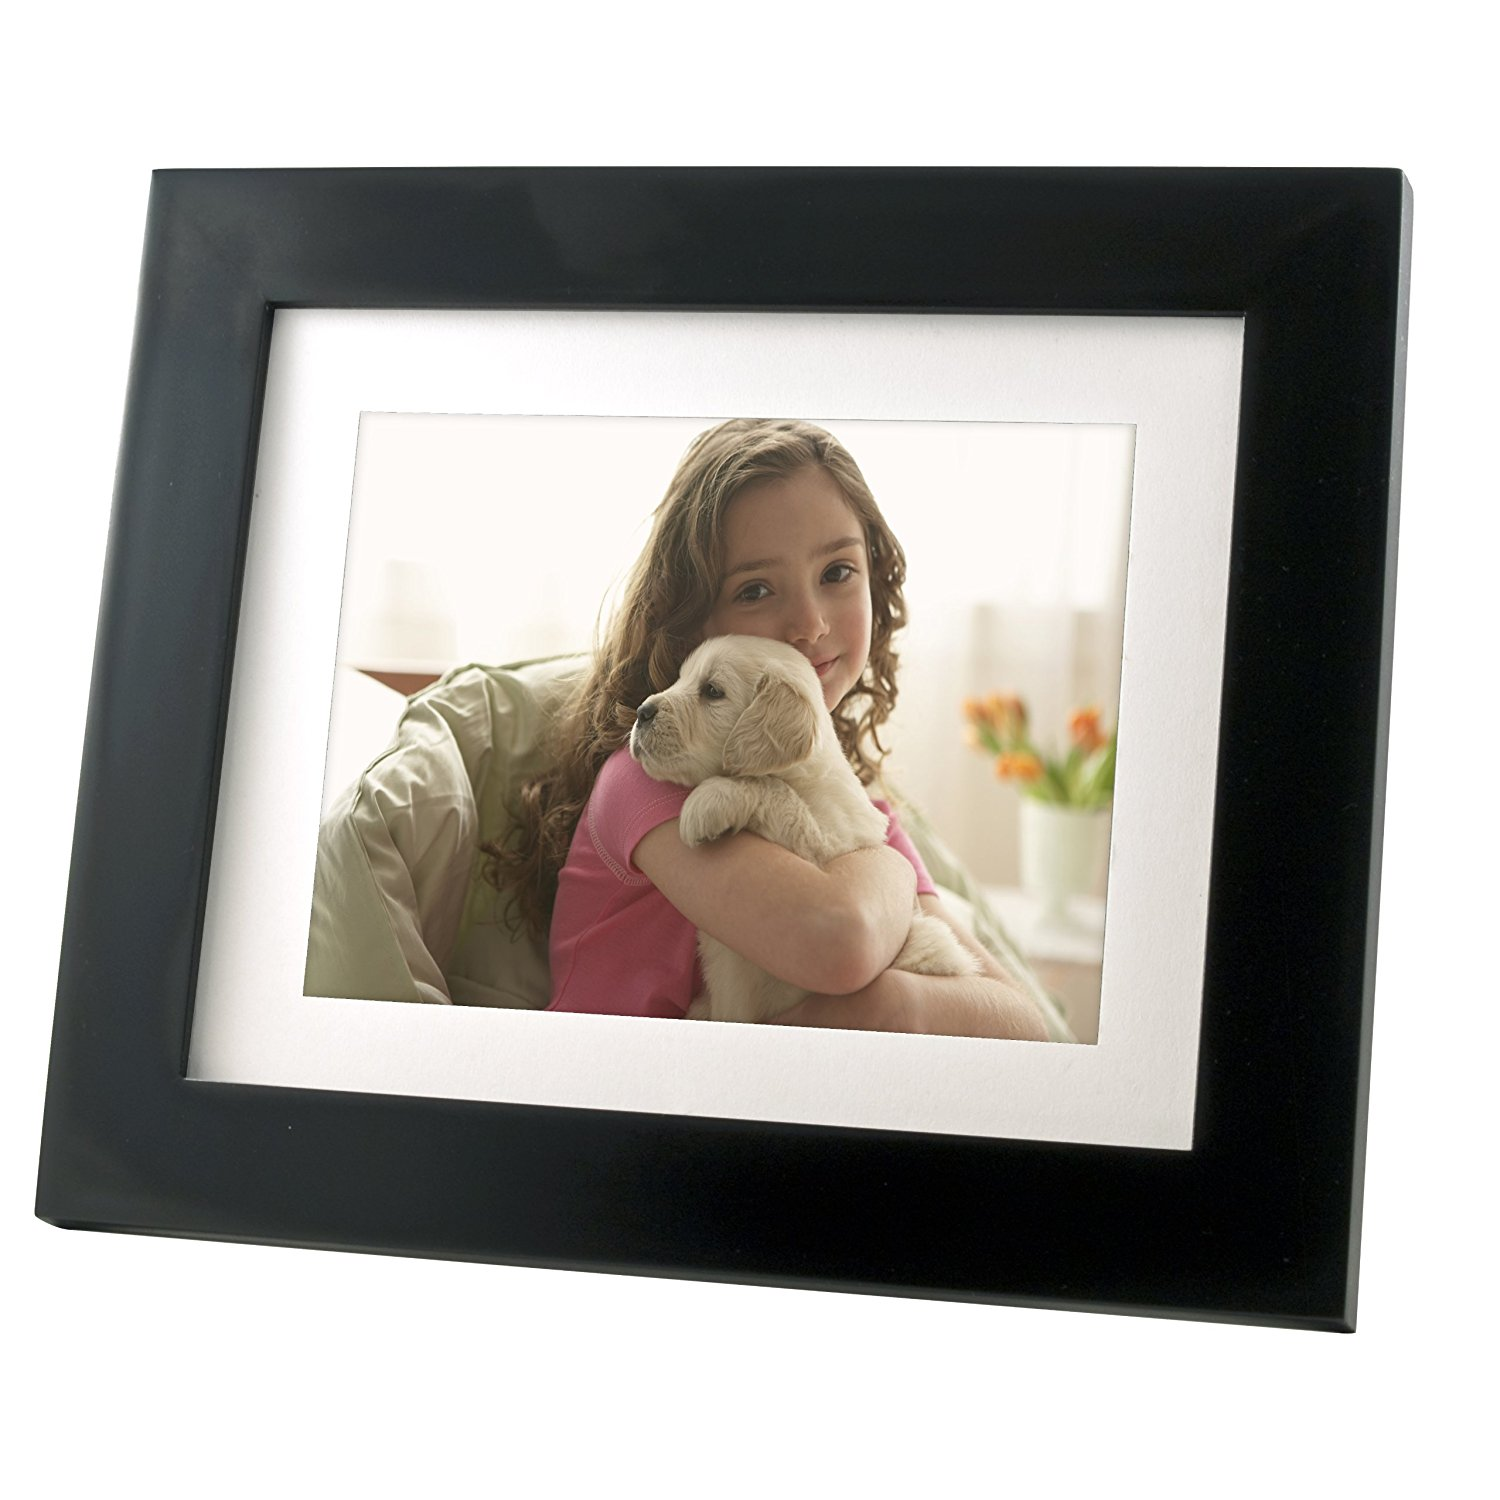 Cached How to use pandigital photo frame